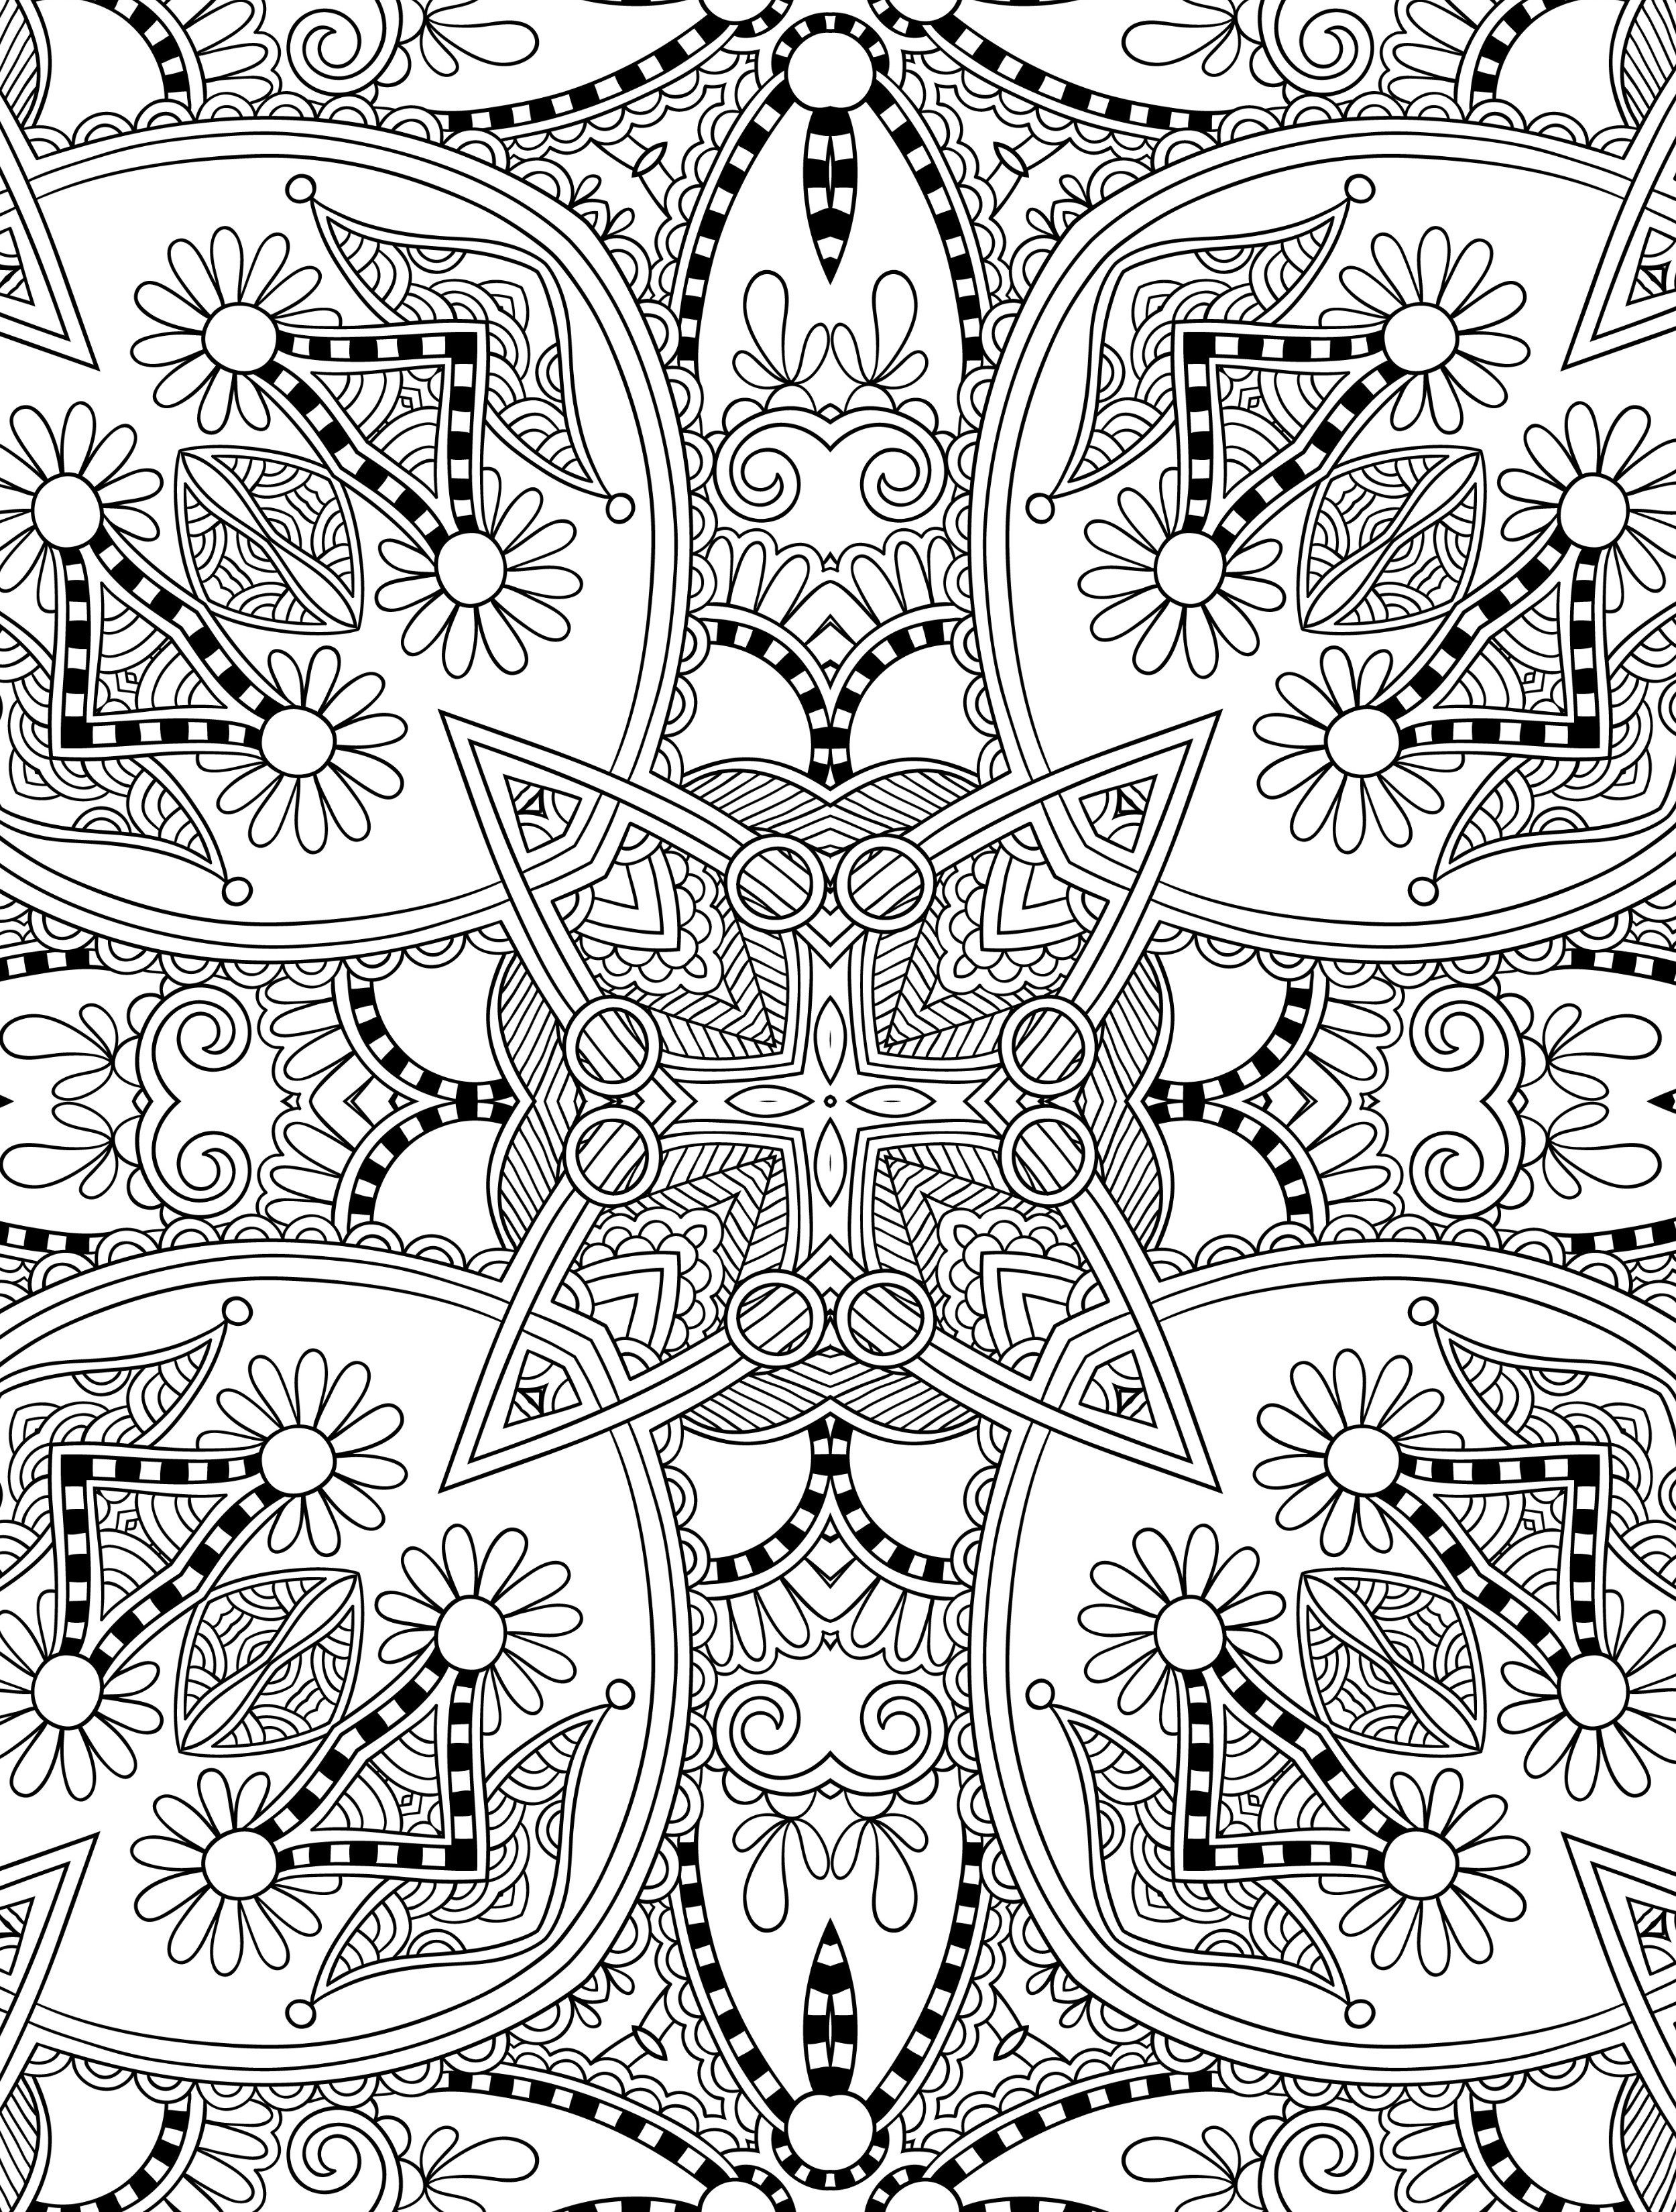 Free coloring pages for adults abstract - 10 Free Printable Holiday Adult Coloring Pages